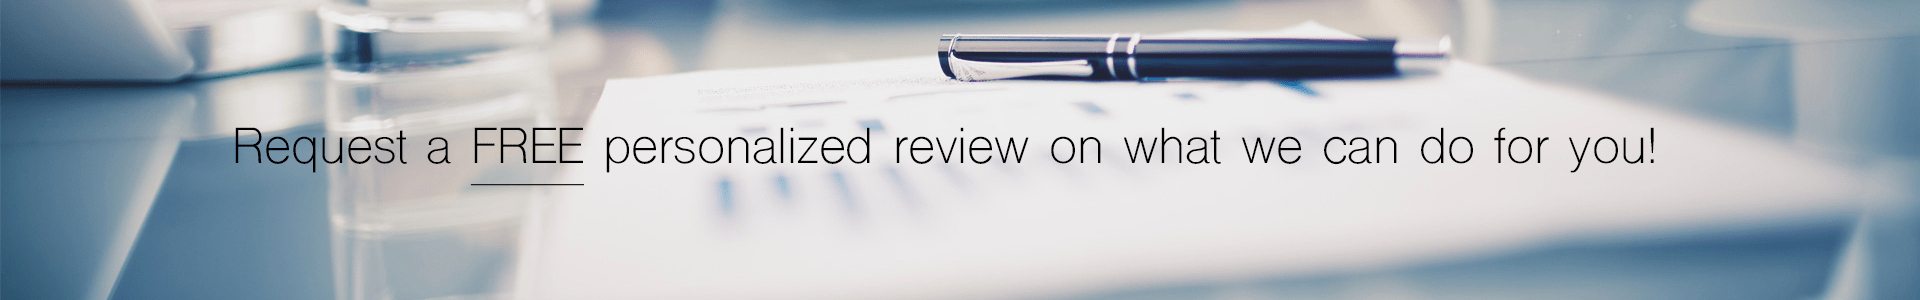 personalized-review